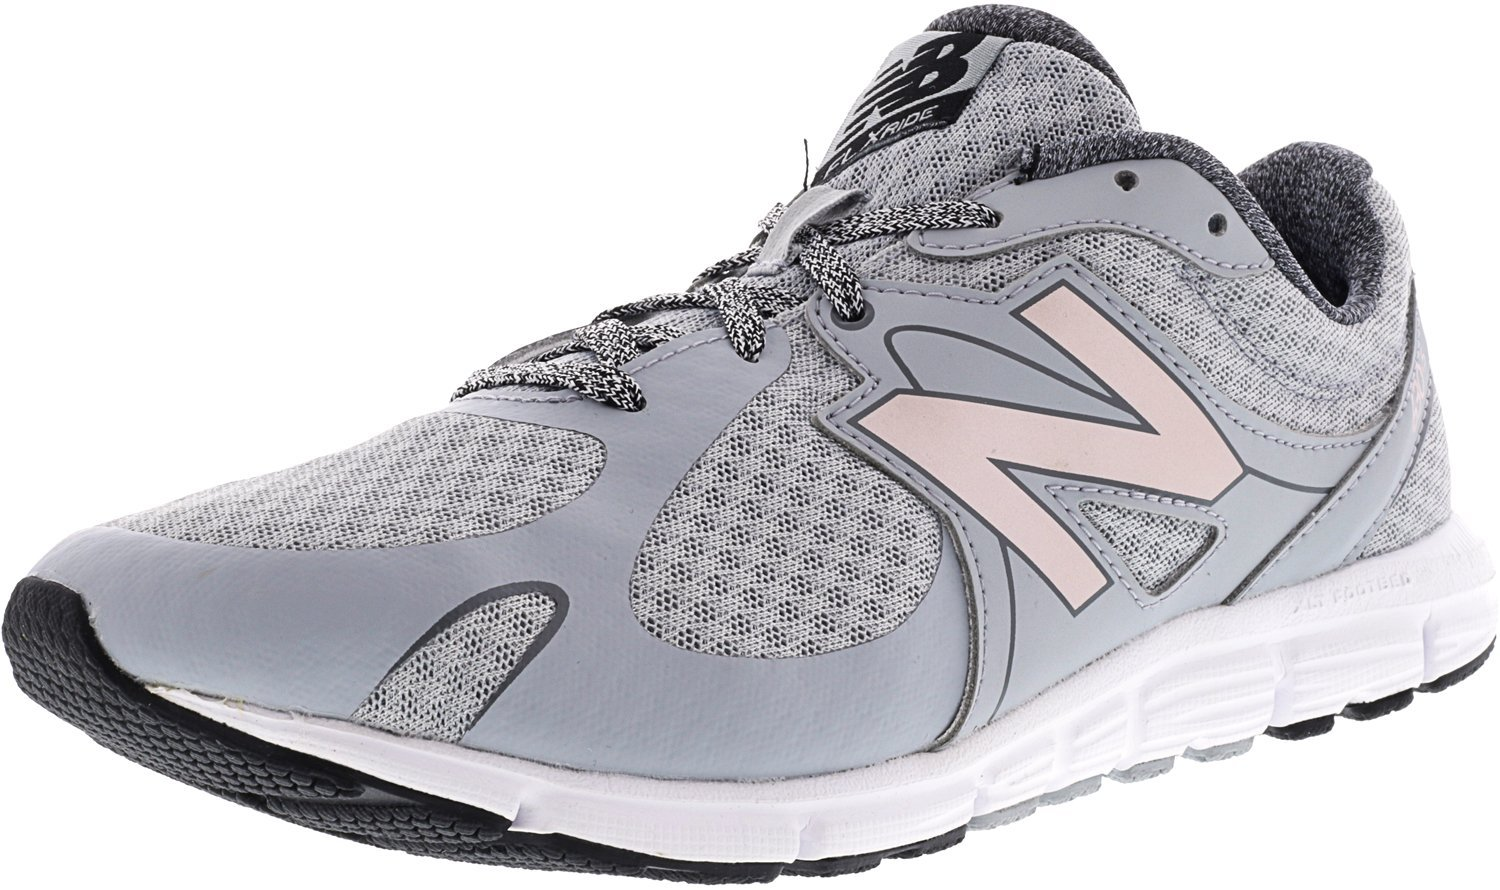 New Balance Women's 630v5 Flex Ride Running Shoe B01HGLI5U2 9 D US|Silver Mink/Rose